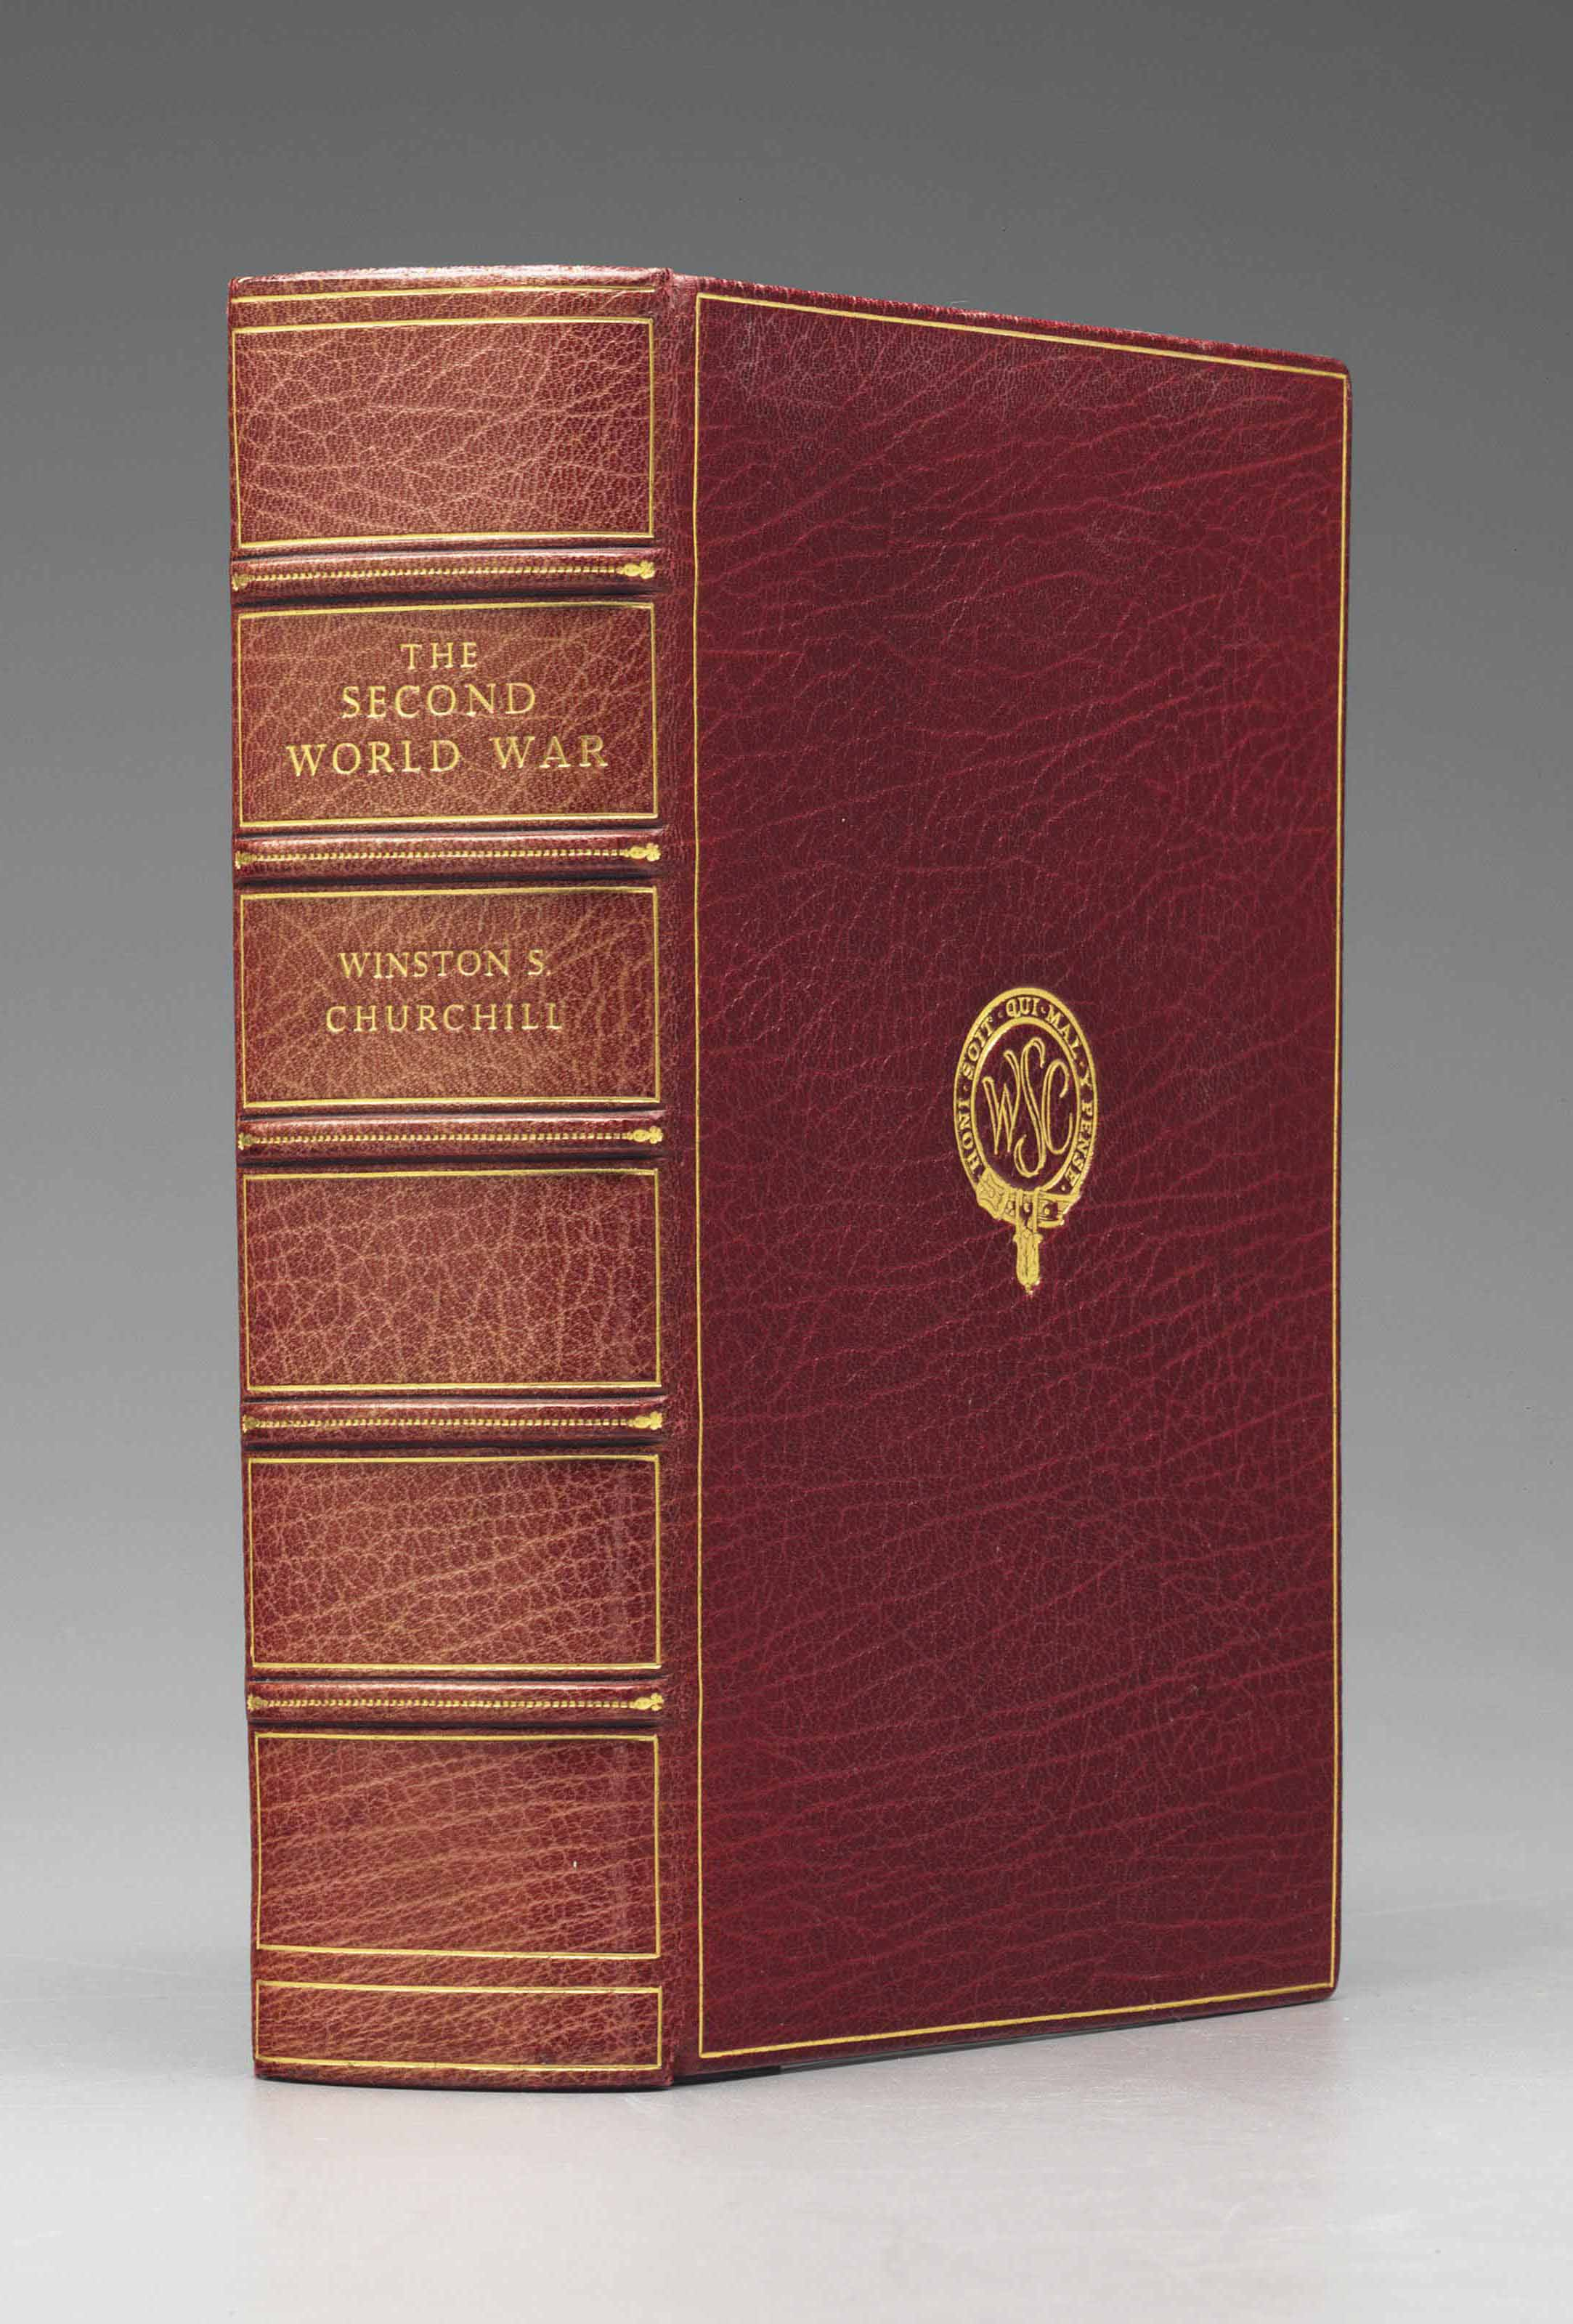 CHURCHILL, Winston S. The Second World War, and an Epilogue on the Years 1945-1957. London: Cassell & Co., 1959.